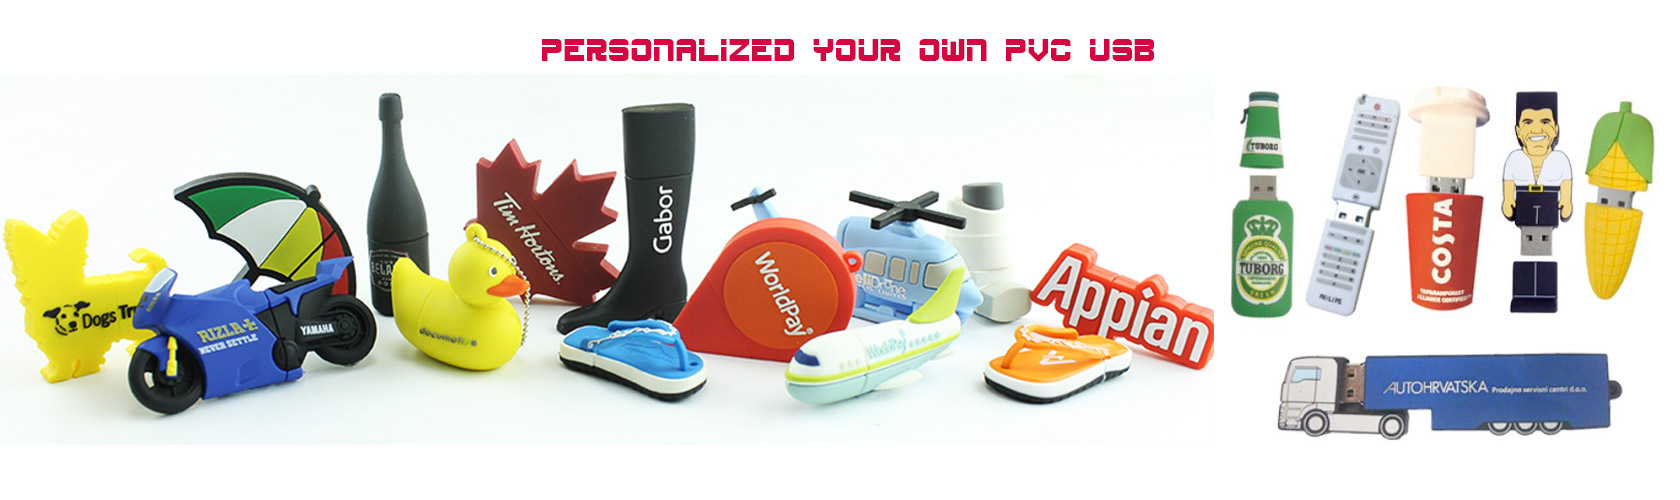 Custom PVC USB drives and custom-made USB